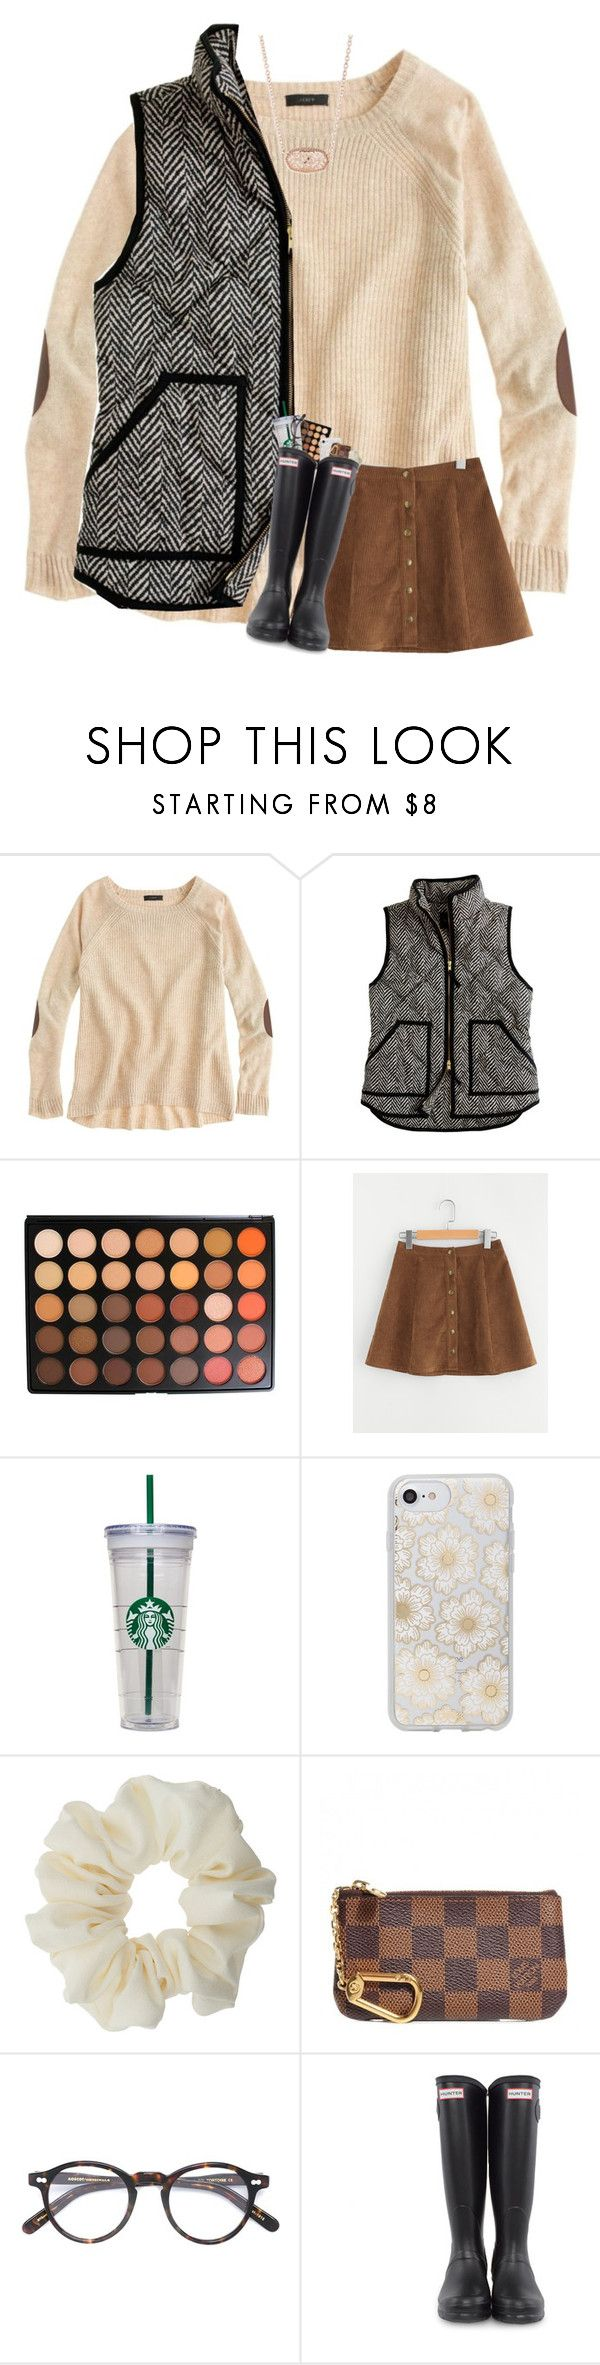 """""""12 days till christmas !!"""" by sarenaaaseeger ❤ liked on Polyvore featuring J.Crew, Morphe, WALL, Sonix, Miss Selfridge, Louis Vuitton, Moscot, Hunter and Kendra Scott"""